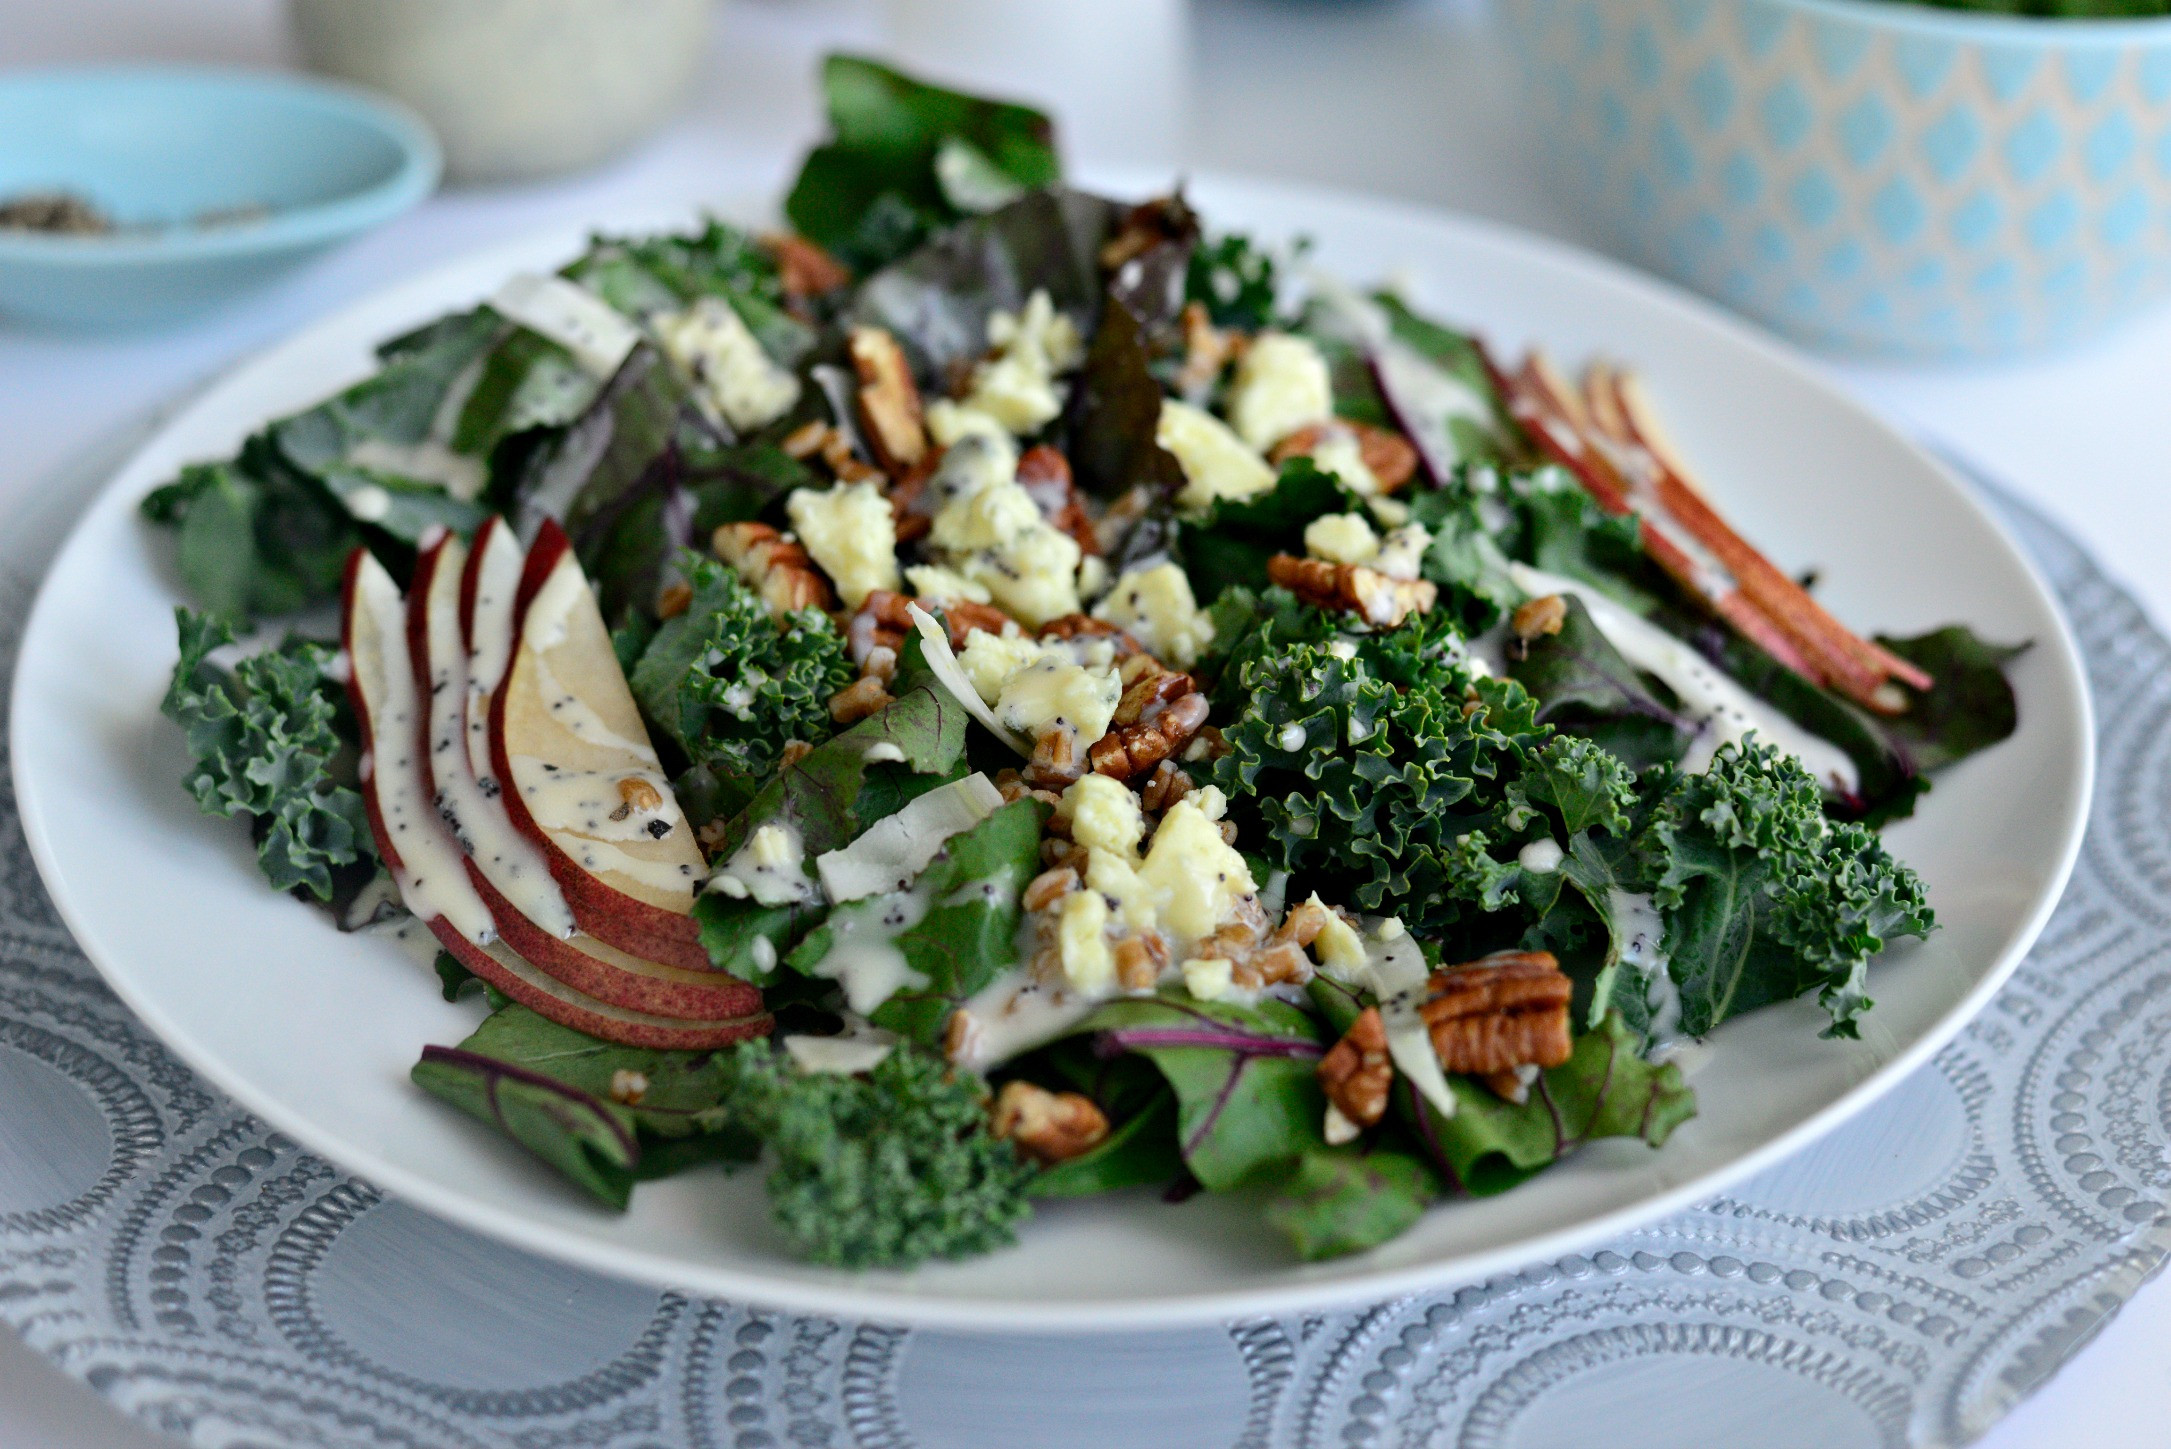 Beet Greens Salad  Simply Scratch Winter Kale and Beet Greens Salad with Pear